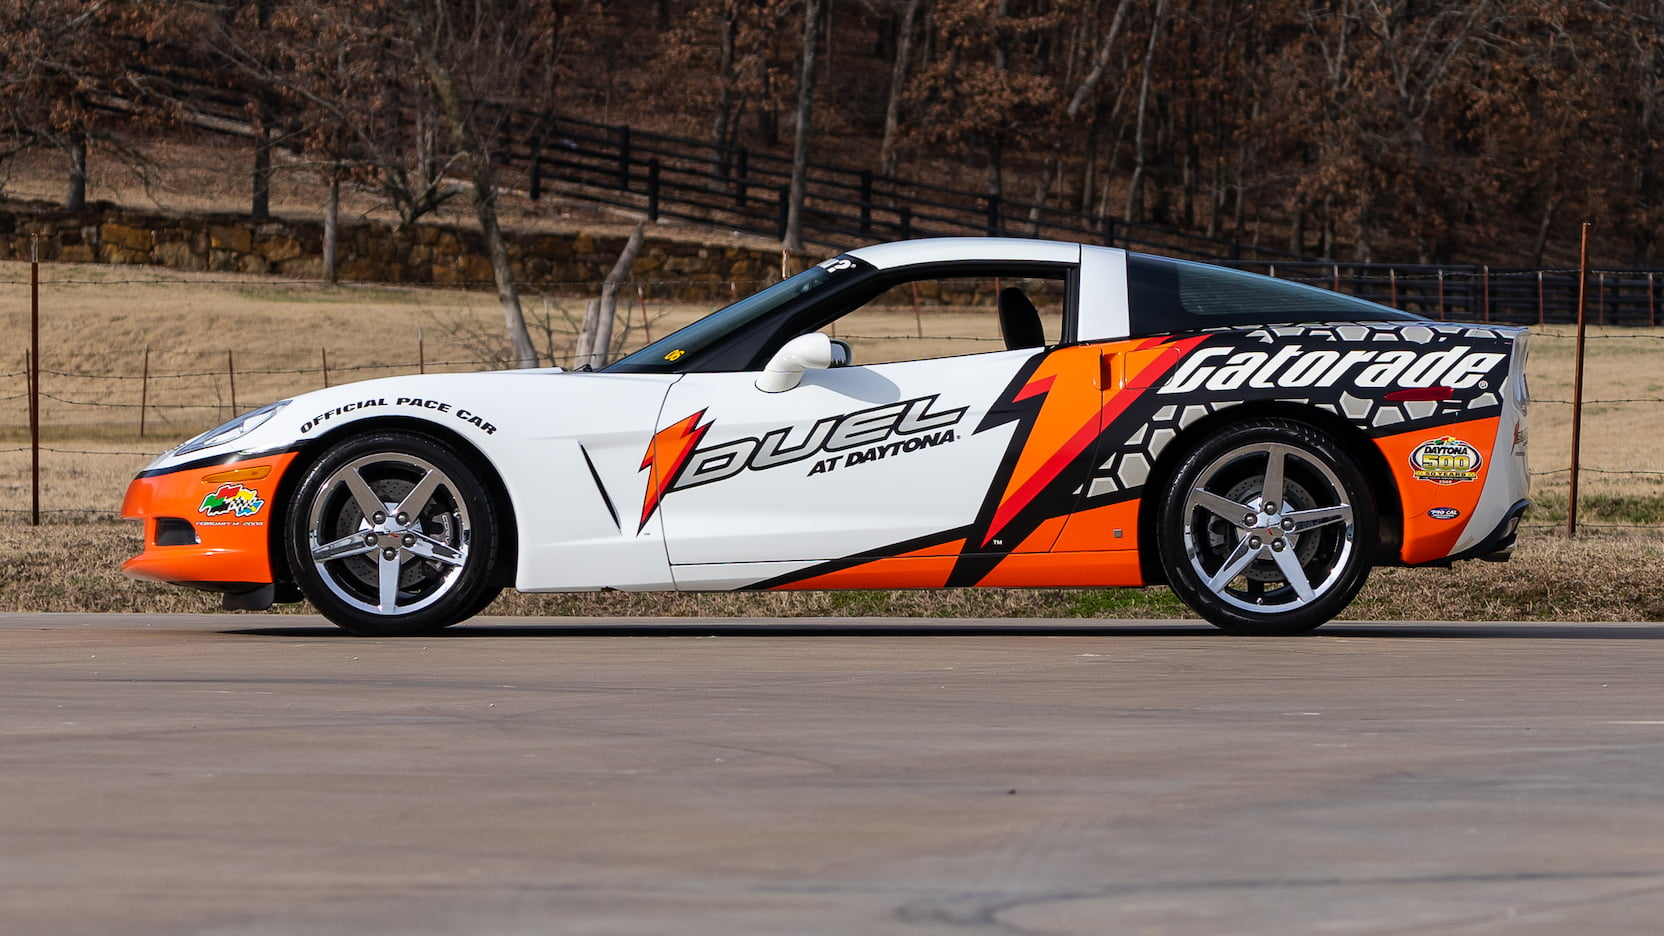 Gatorade 2008 Chevrolet Corvette Daytona Pace Car